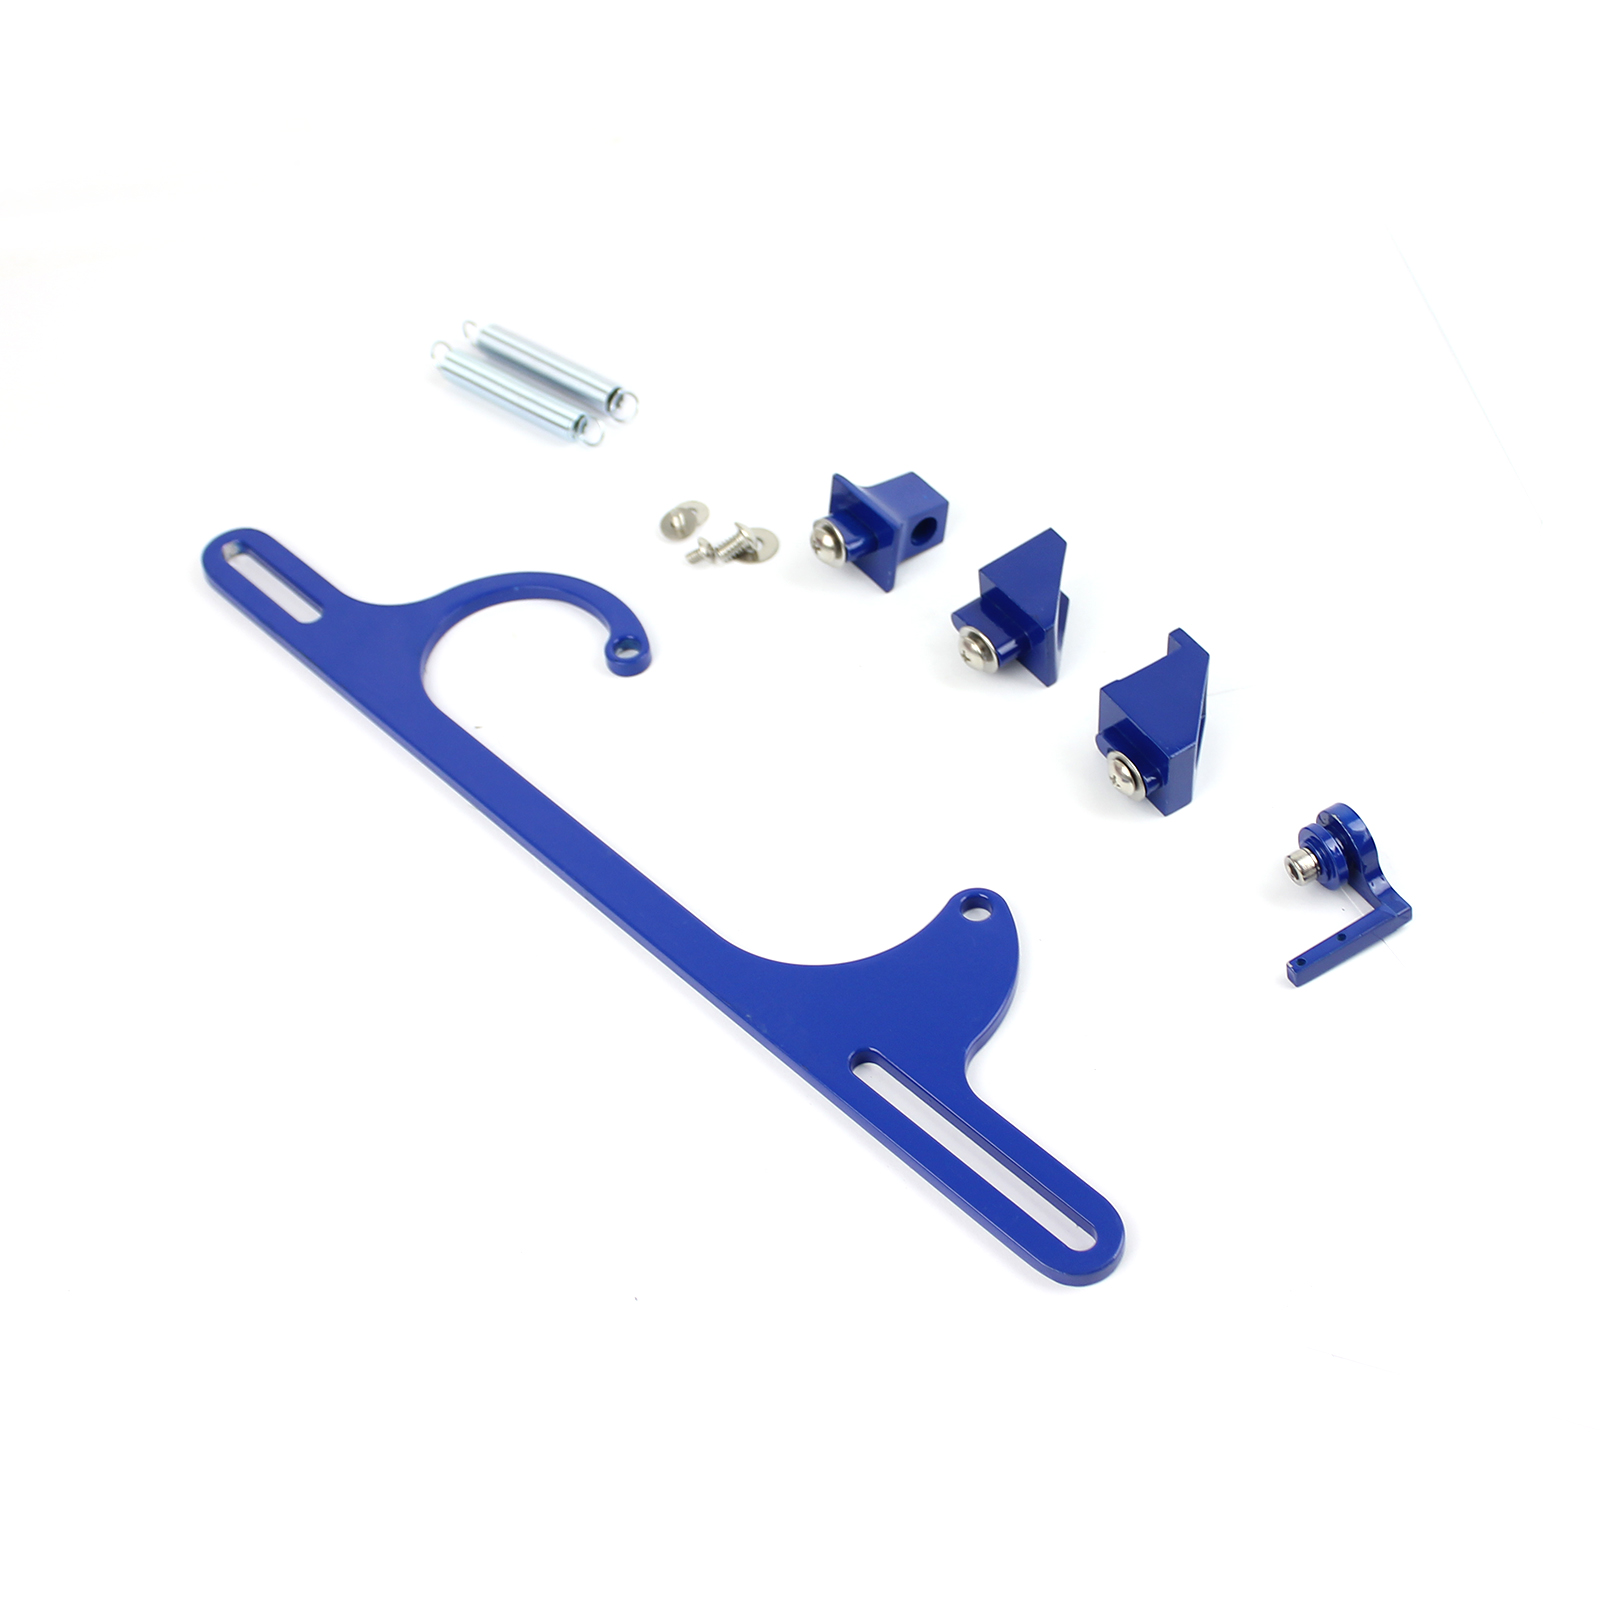 Carburetor Throttle Cable Bracket Kit w/ Return Springs - Billet Blue